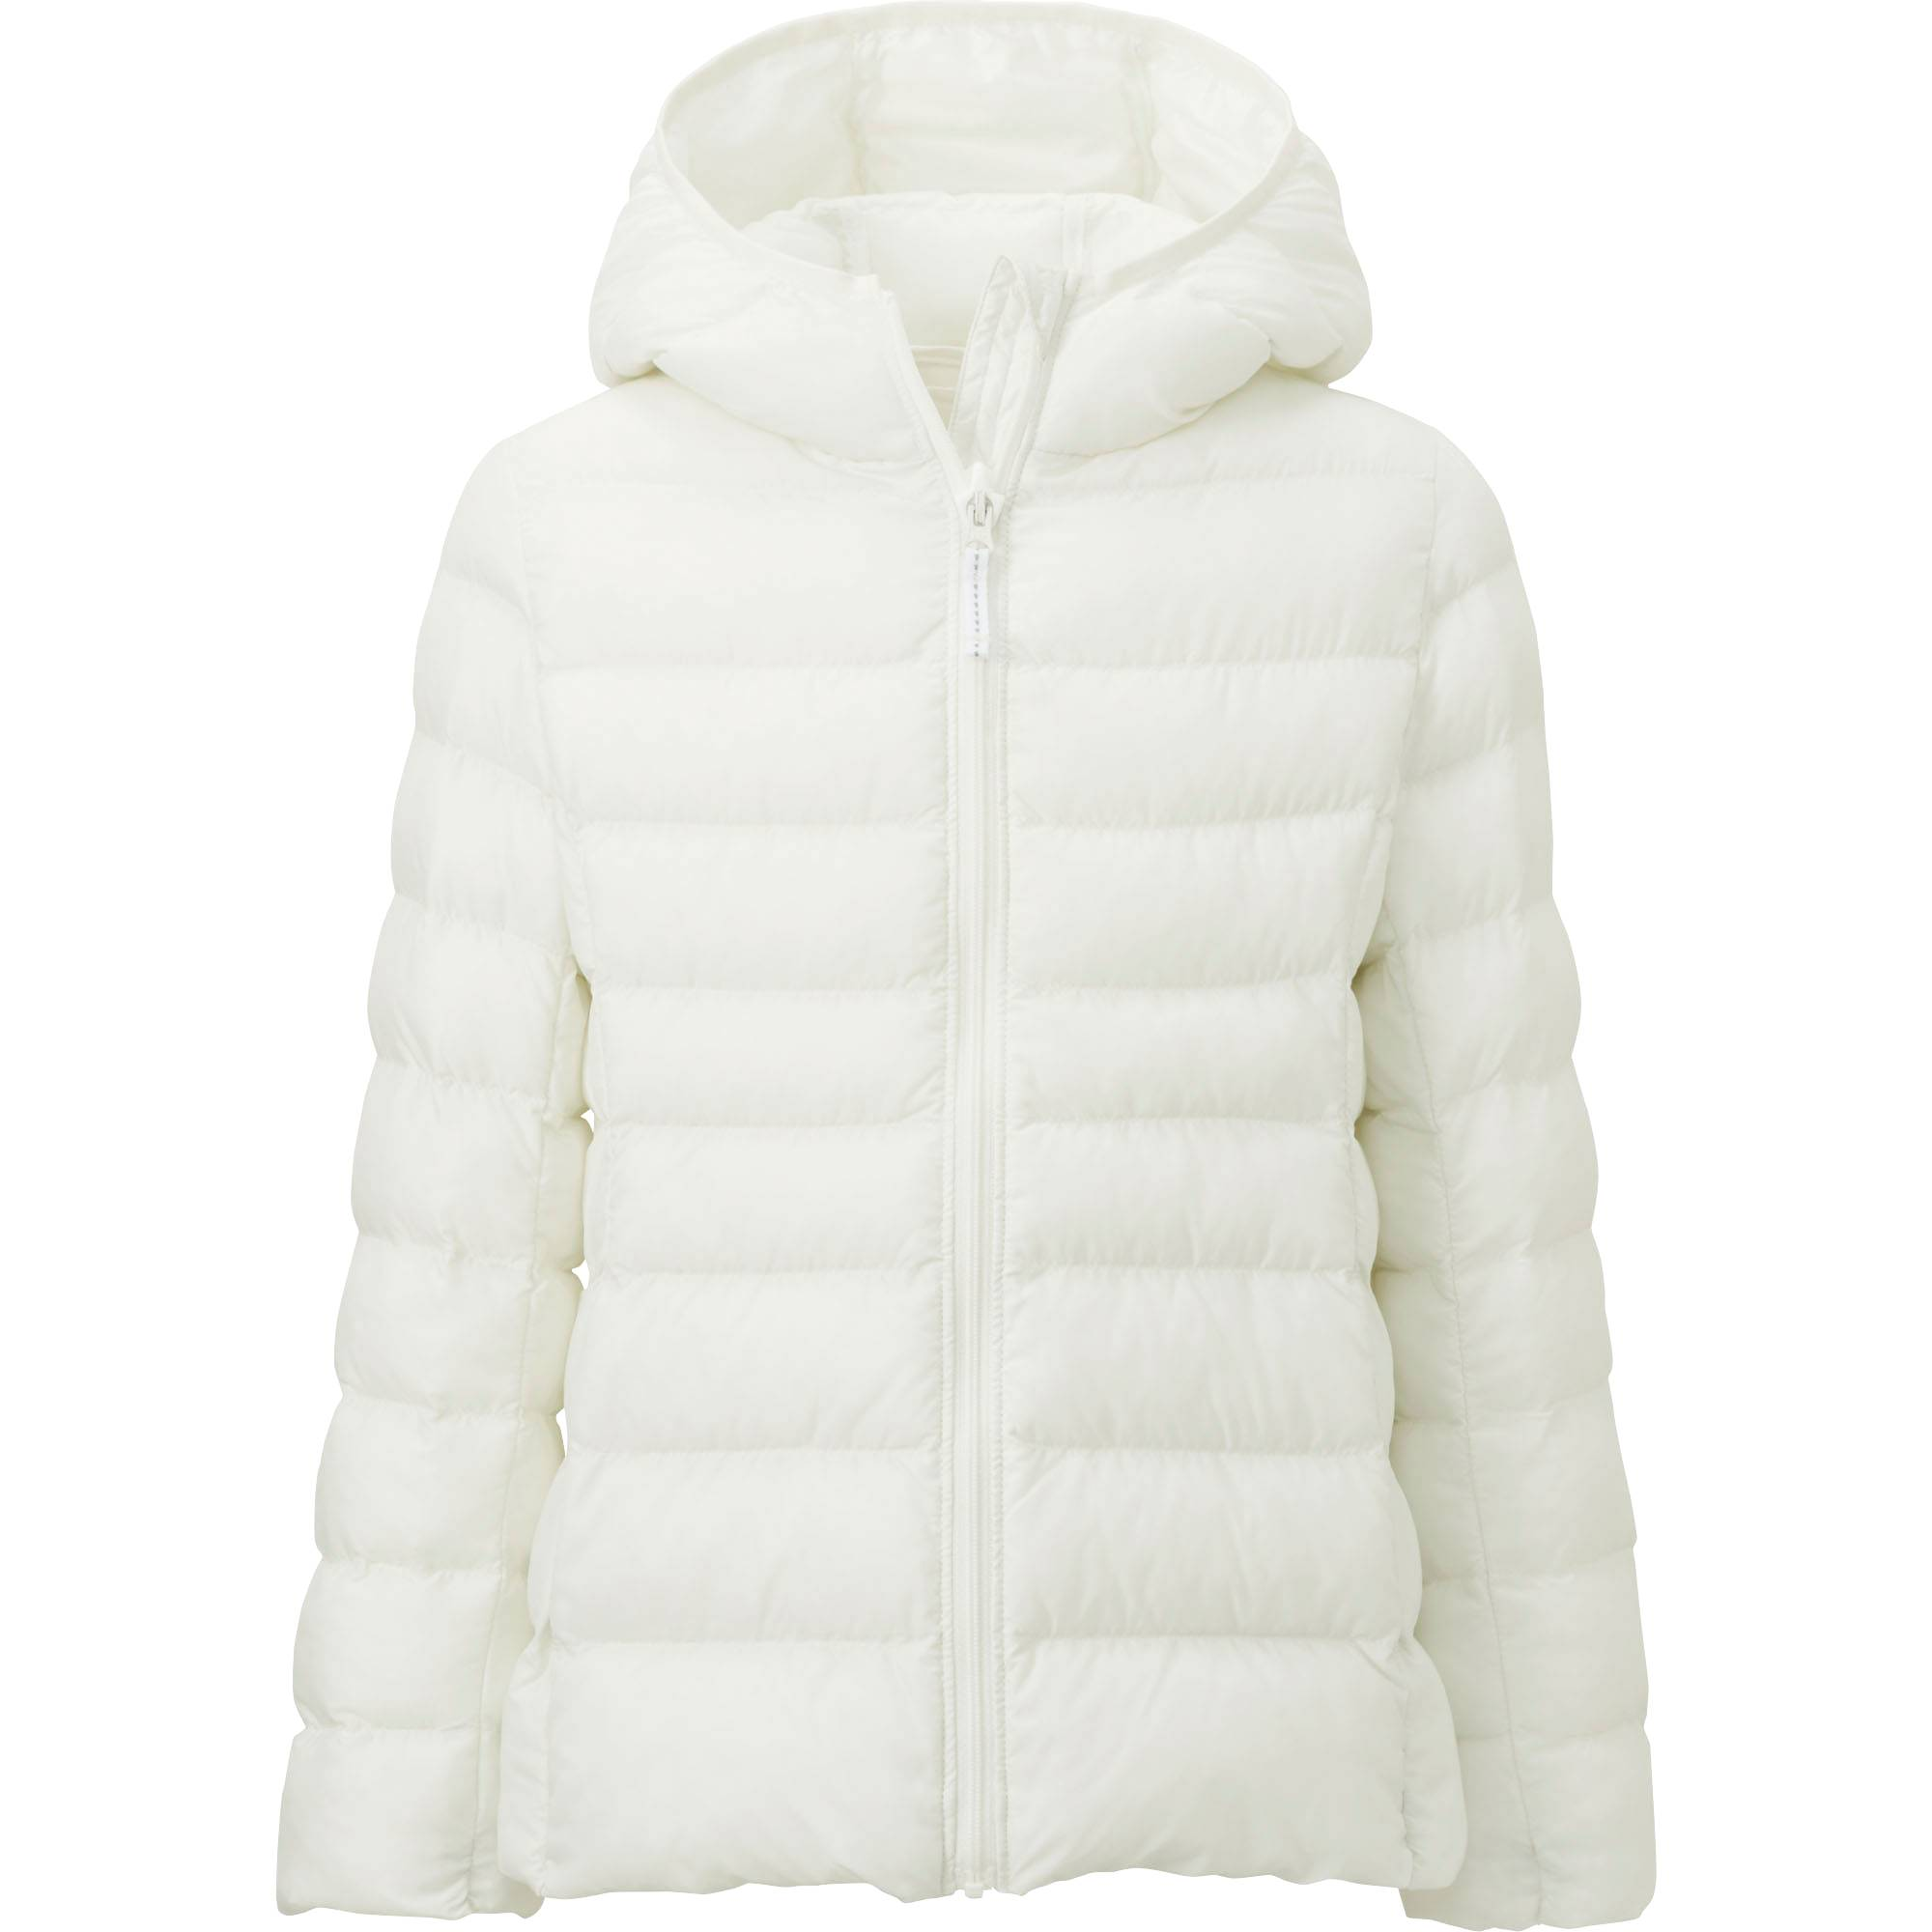 GIRLS LIGHT WARM PADDED PARKA | UNIQLO US